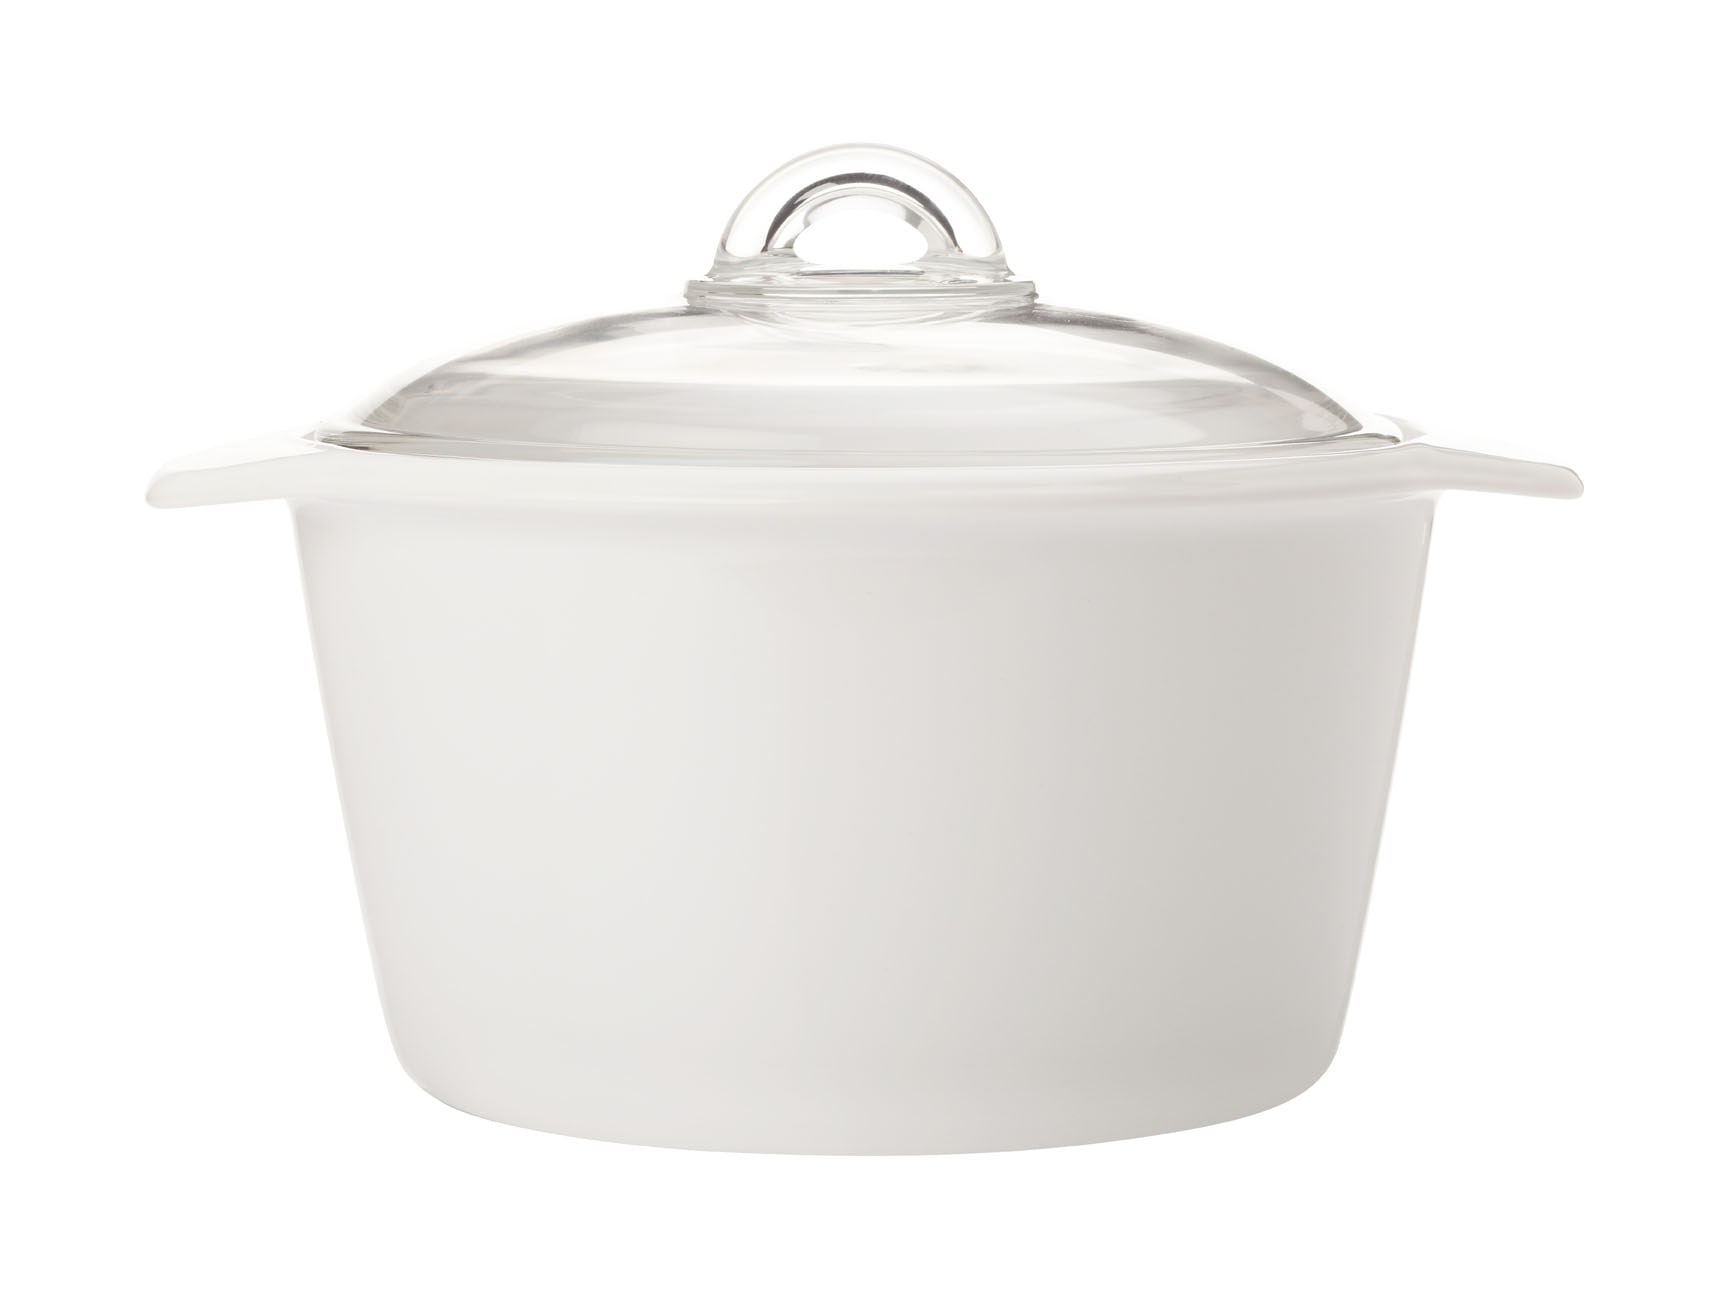 Maxwell & Williams Vitromax 5 Litre Round Casserole White